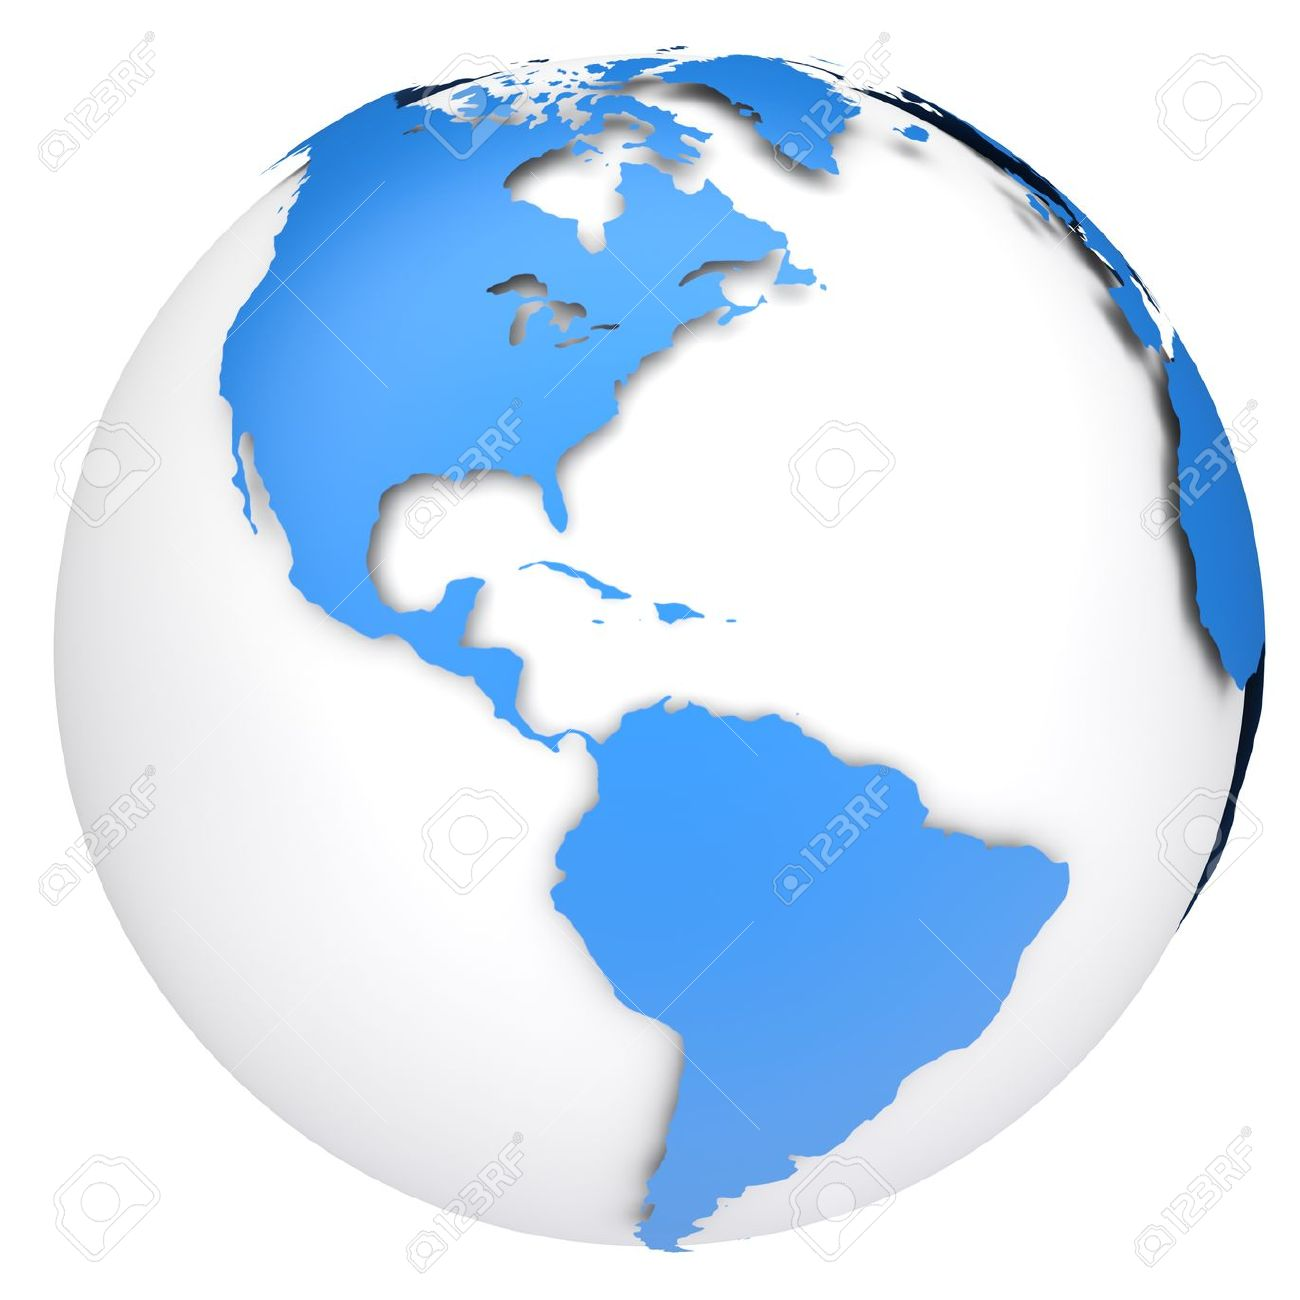 United states map globe clipart banner royalty free Earth Globe Map Side Of The North And South America Stock Photo ... banner royalty free